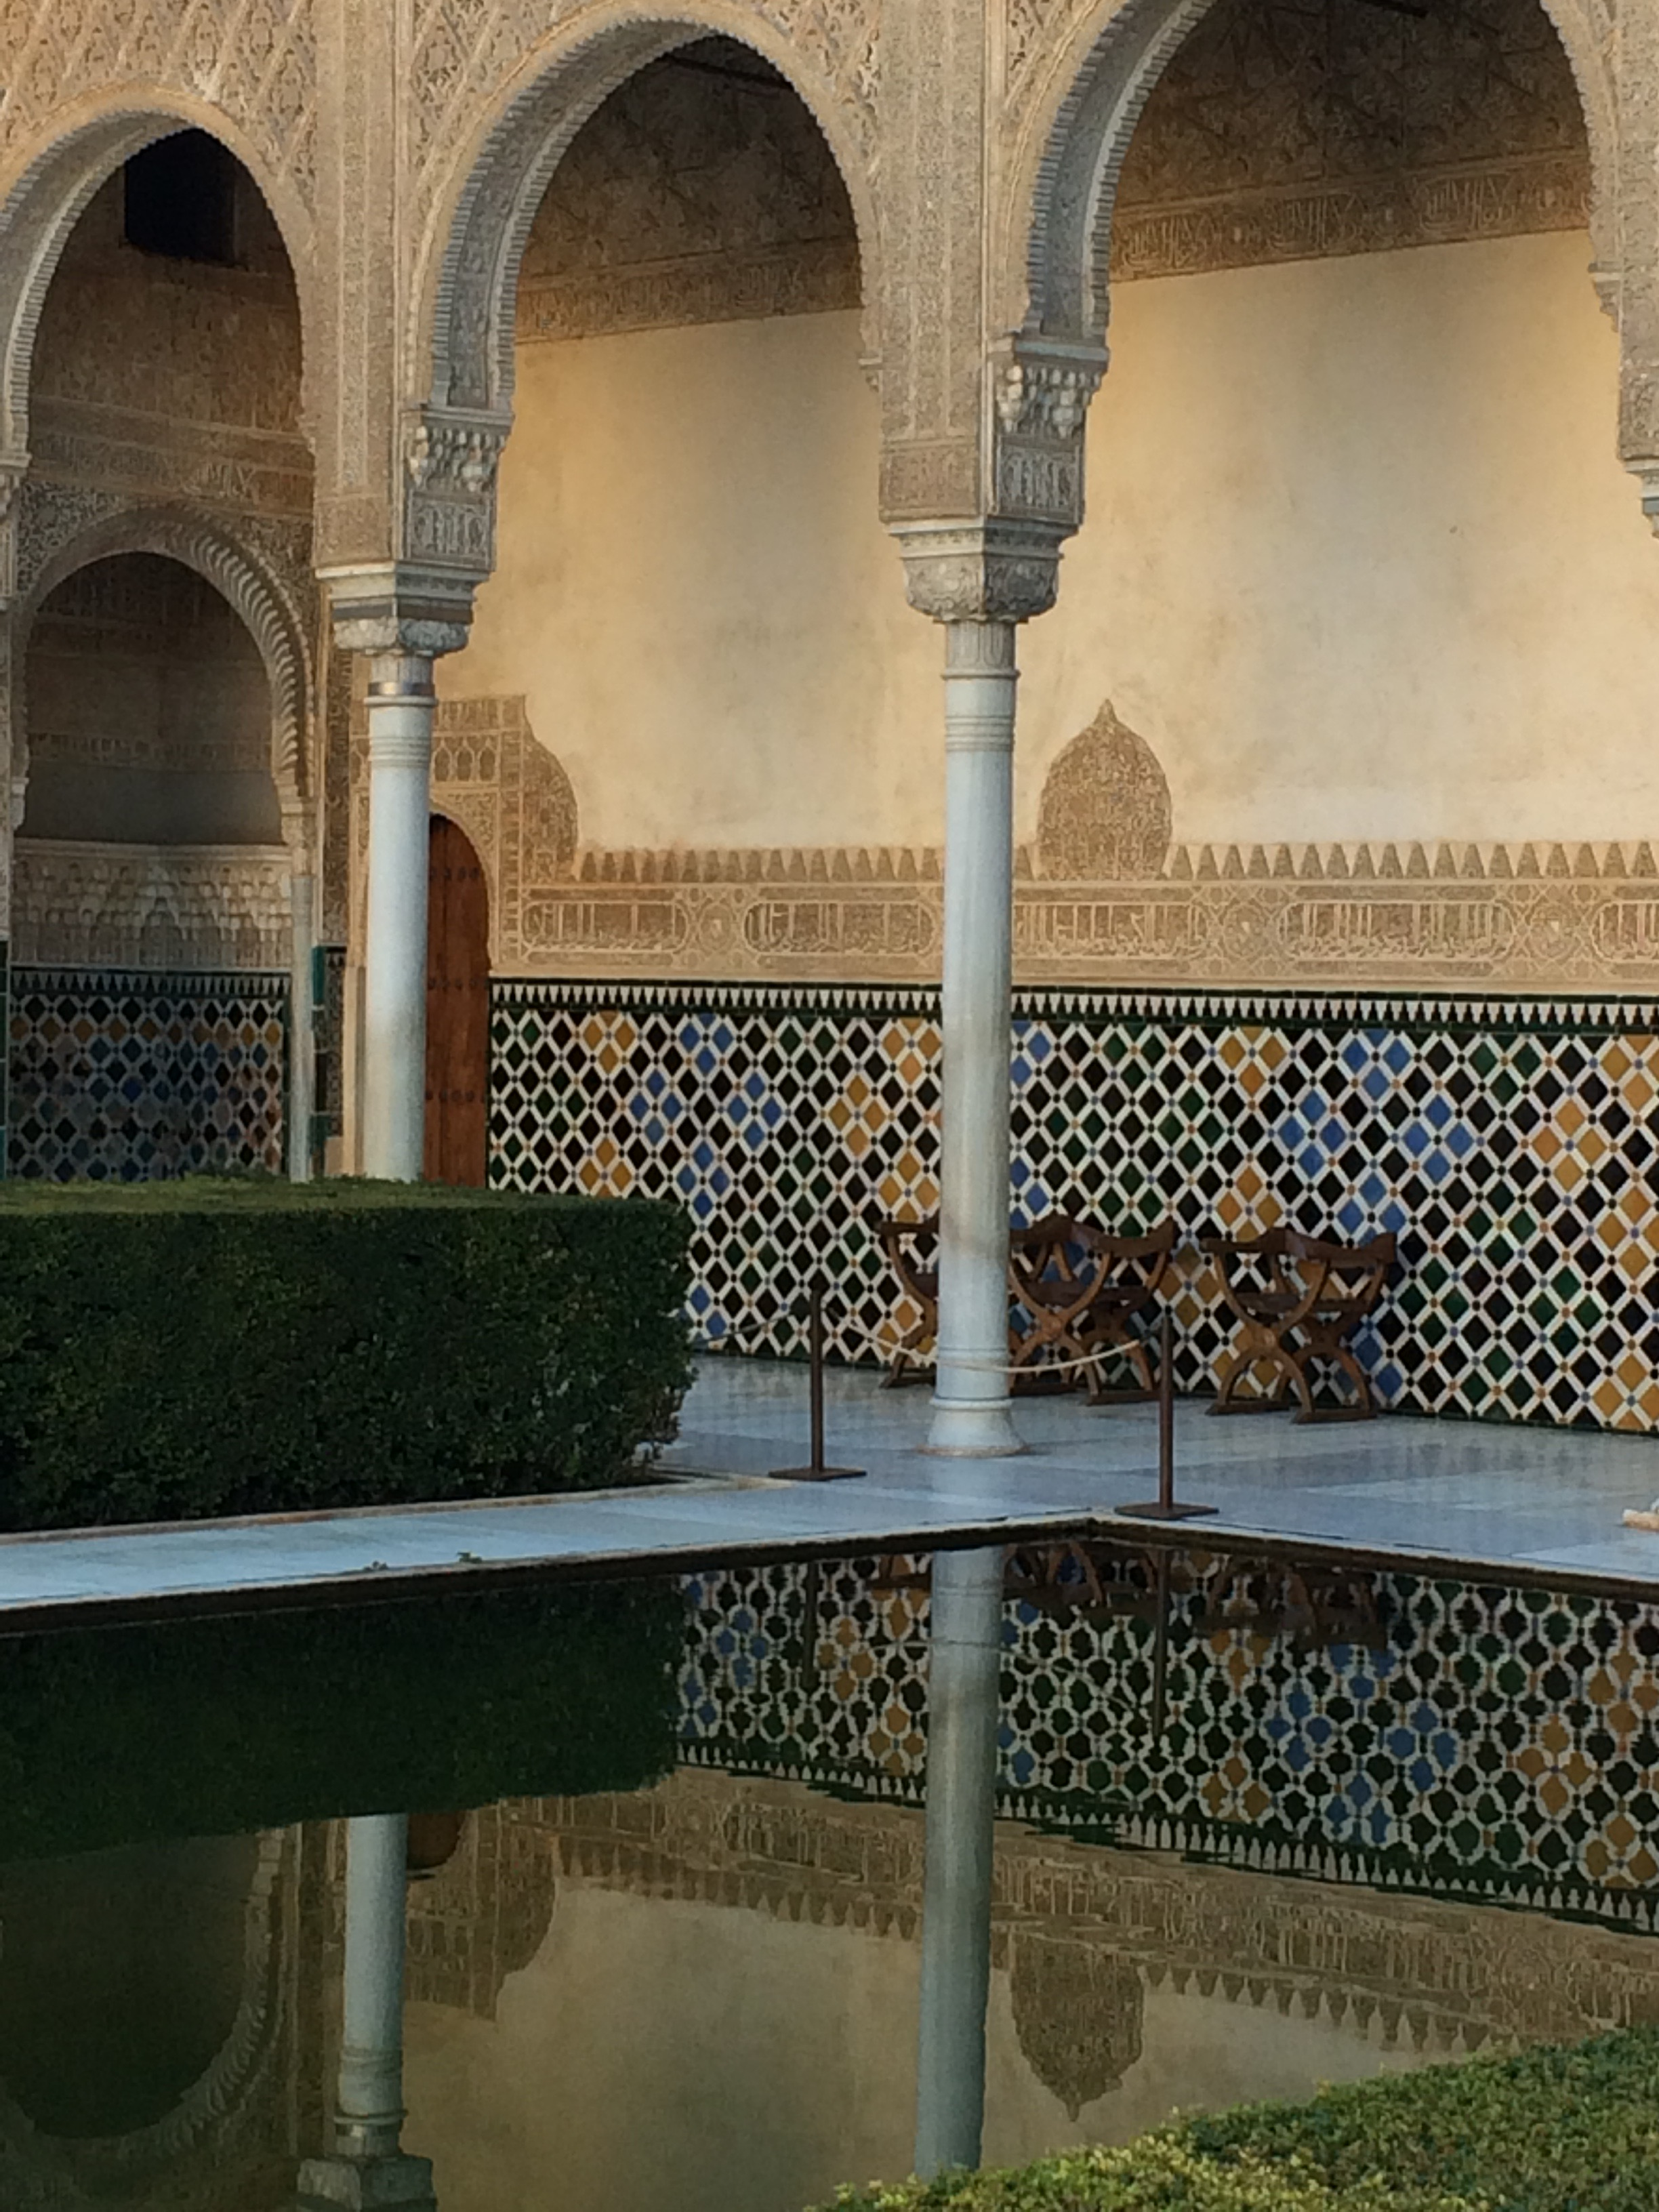 Alhambra Granada Spain - Court of the Myrtles reflectoins